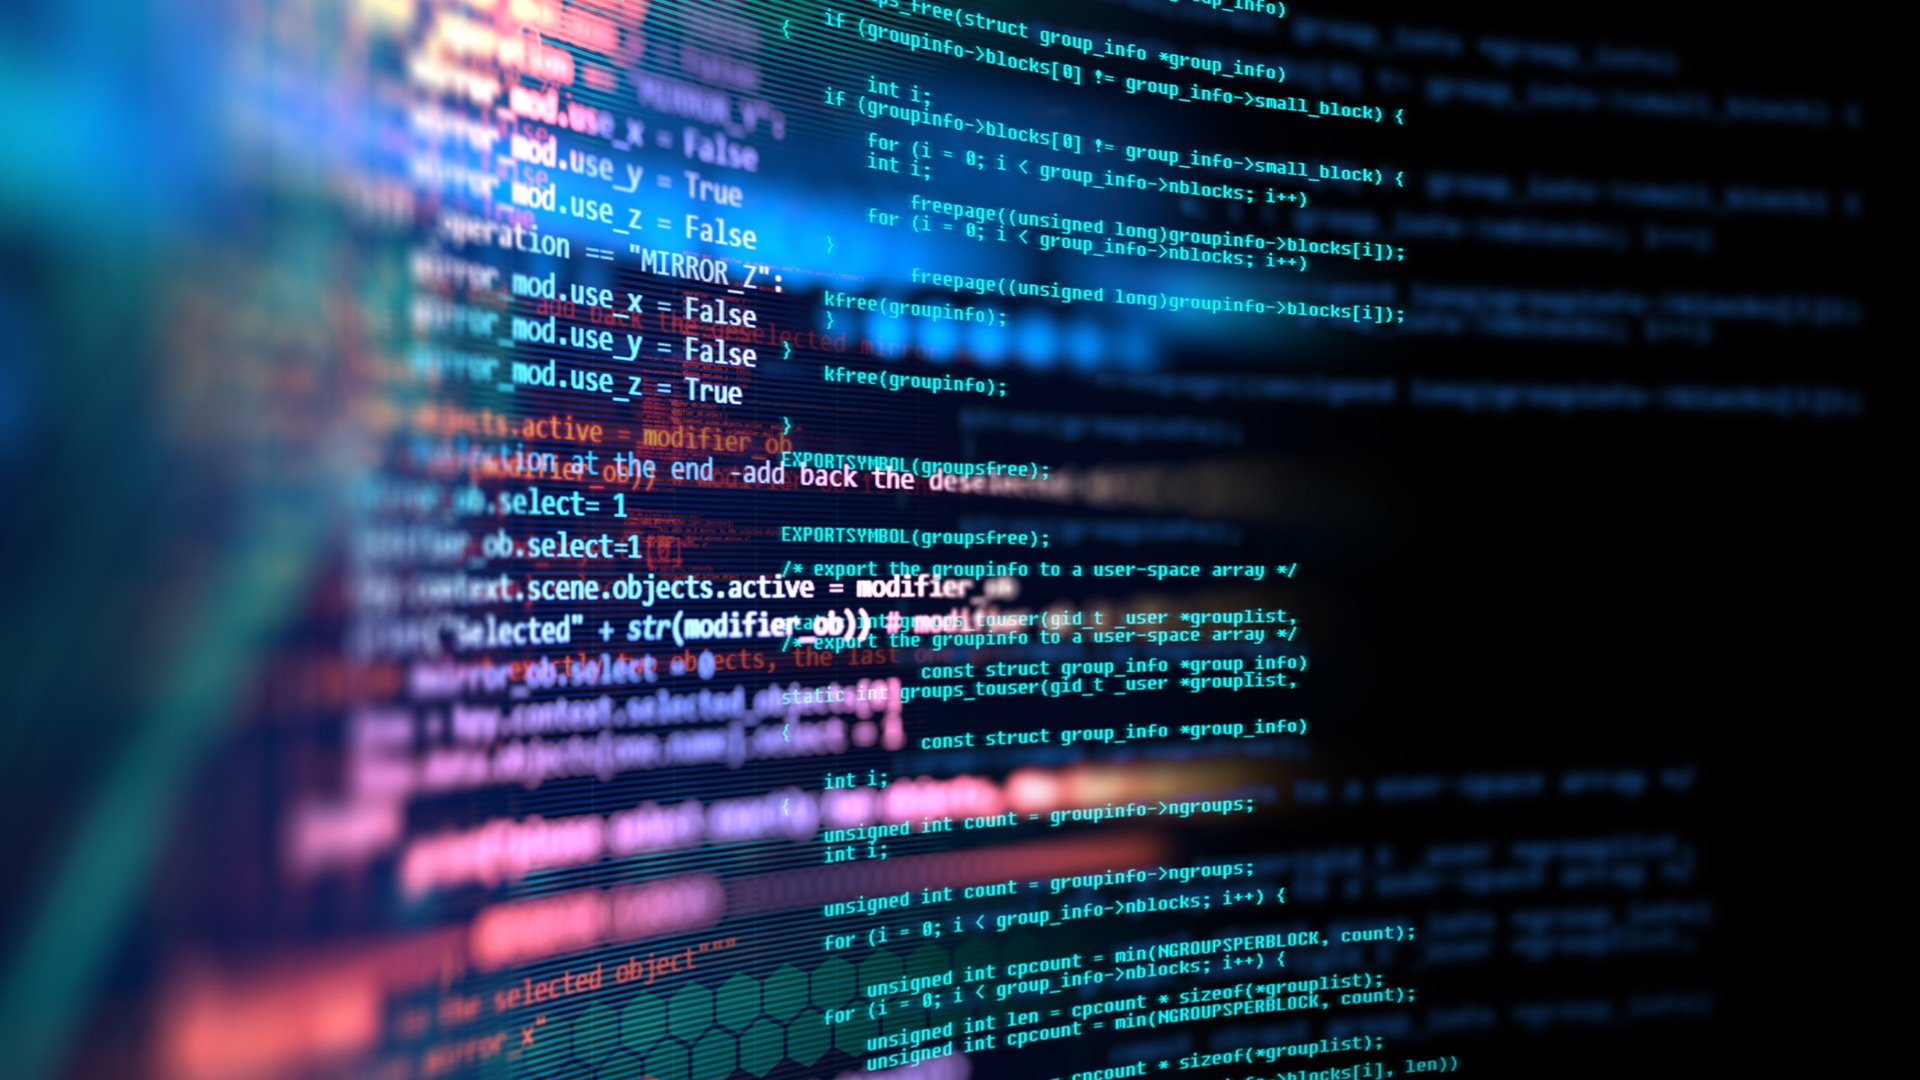 Programming code abstract technology background of software developer | International Spy Museum